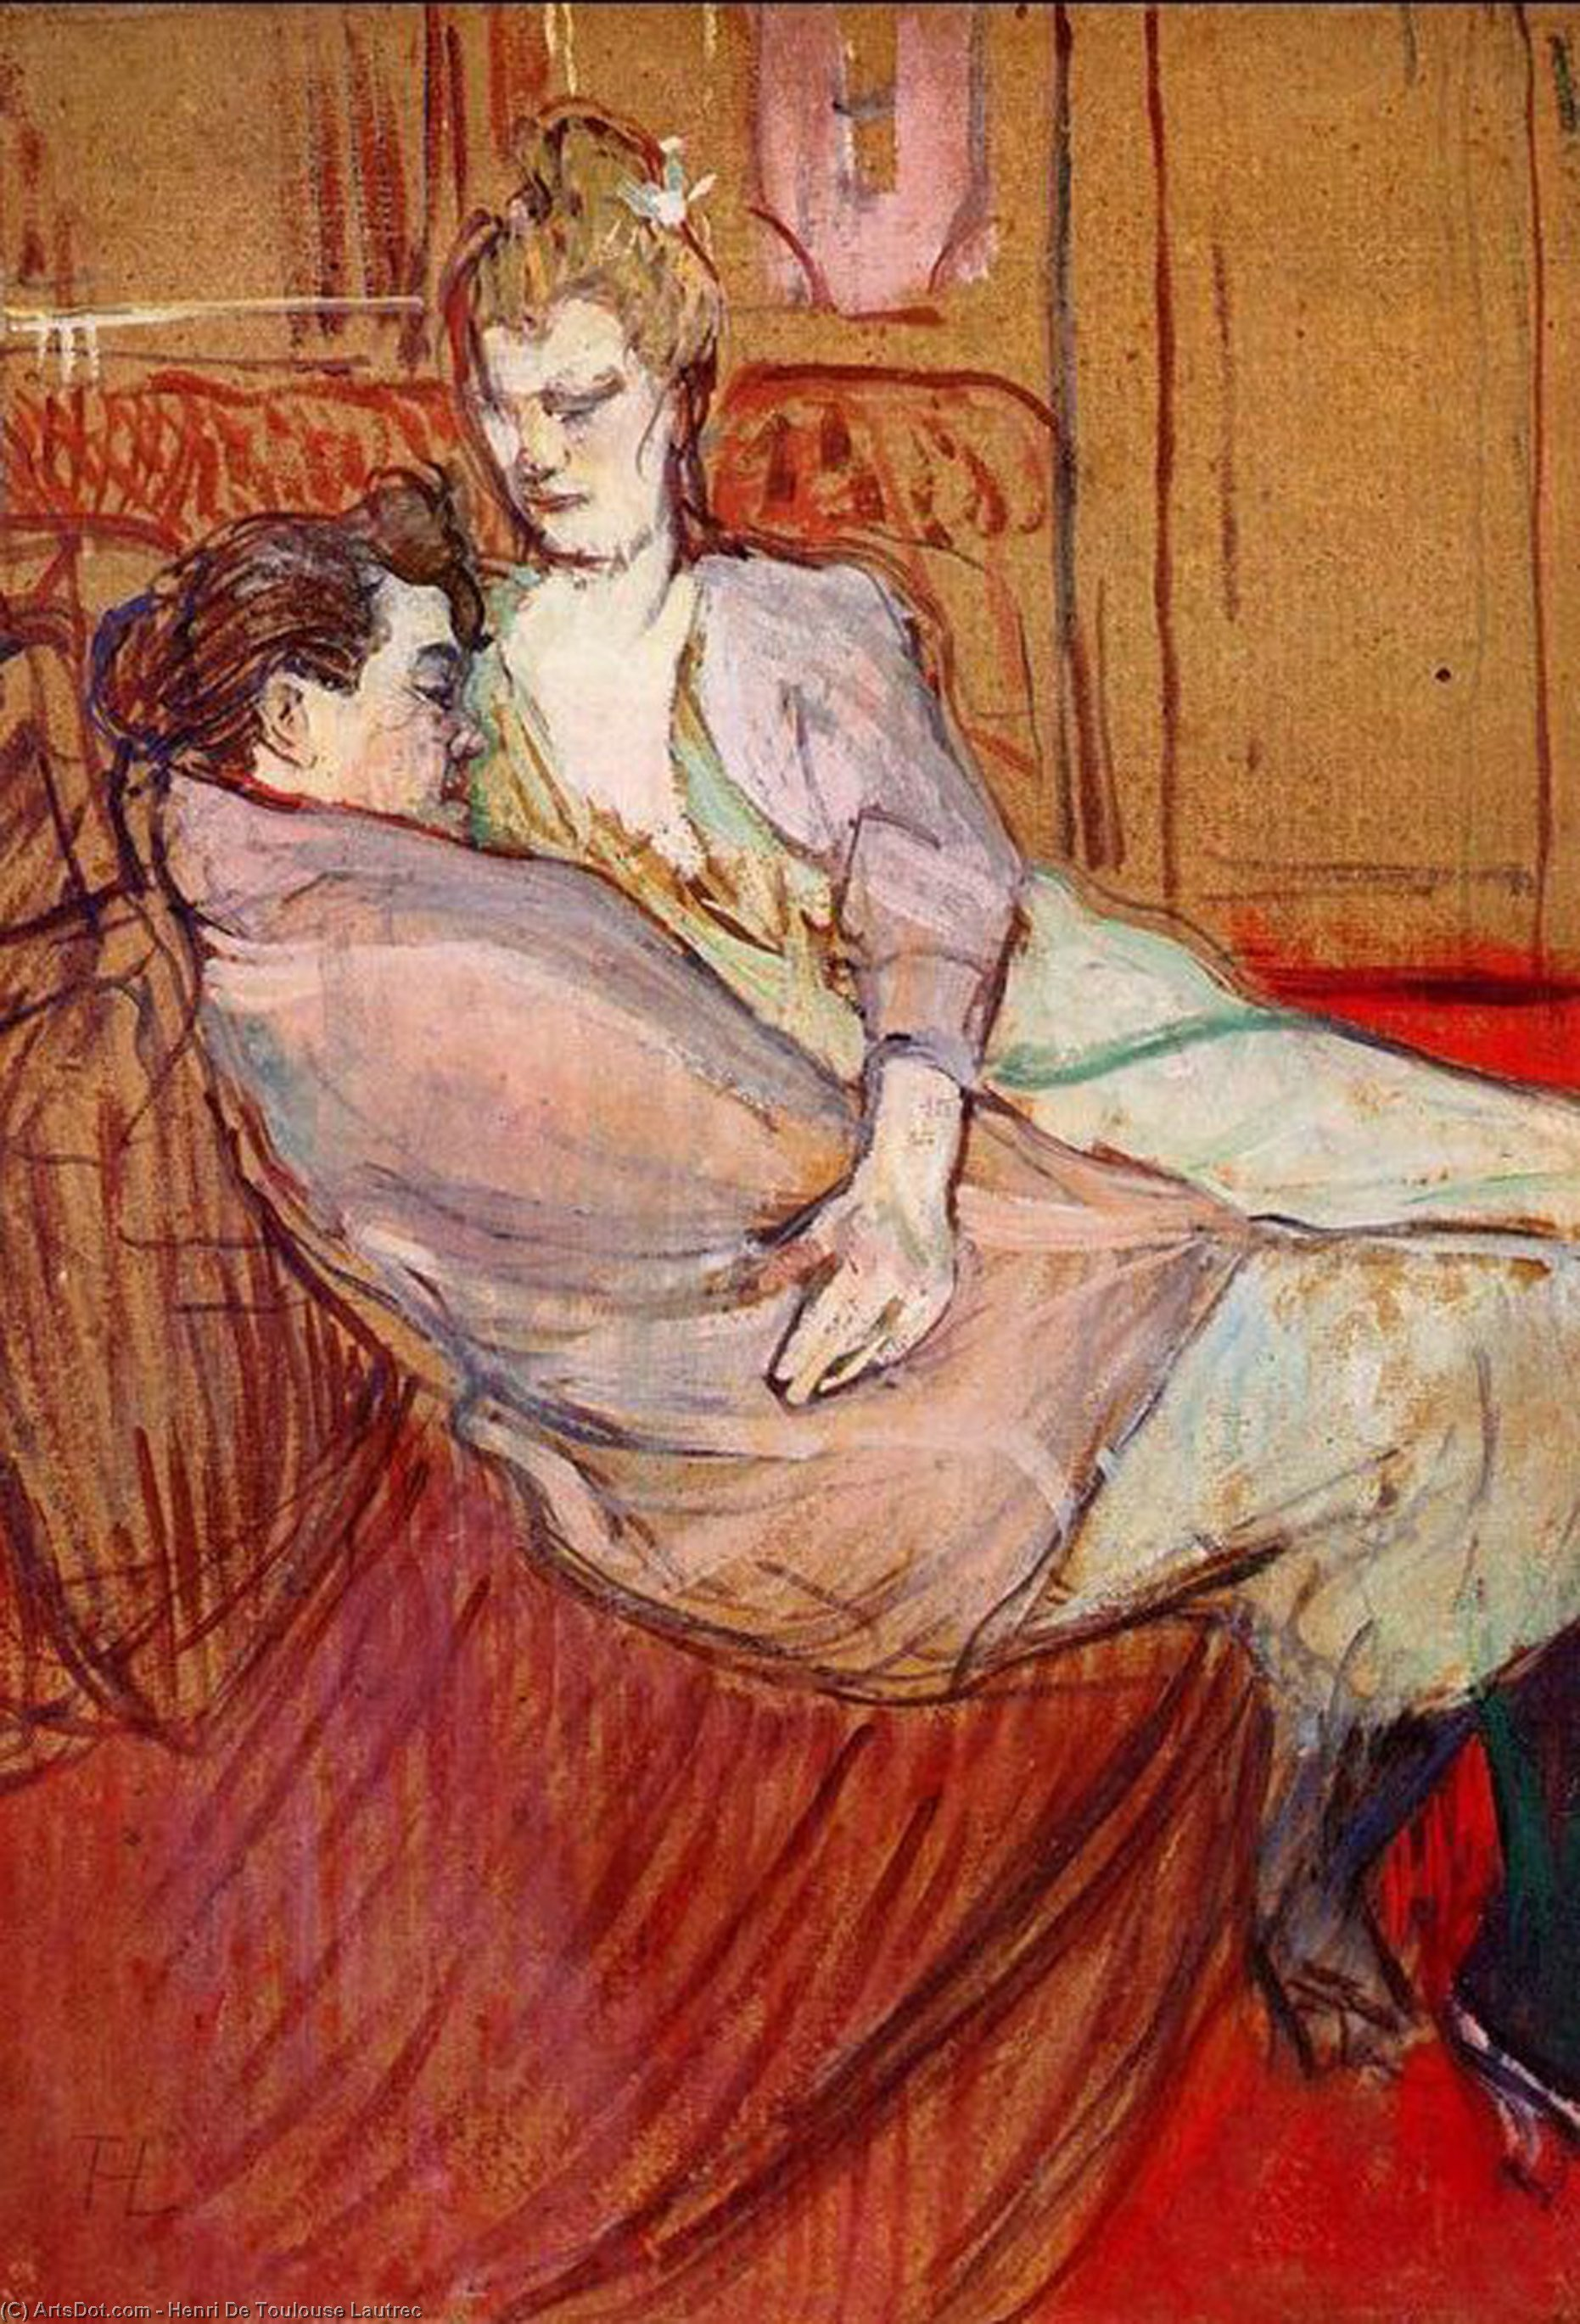 Two Friends, Oil On Panel by Henri De Toulouse Lautrec (1864-1901, France)